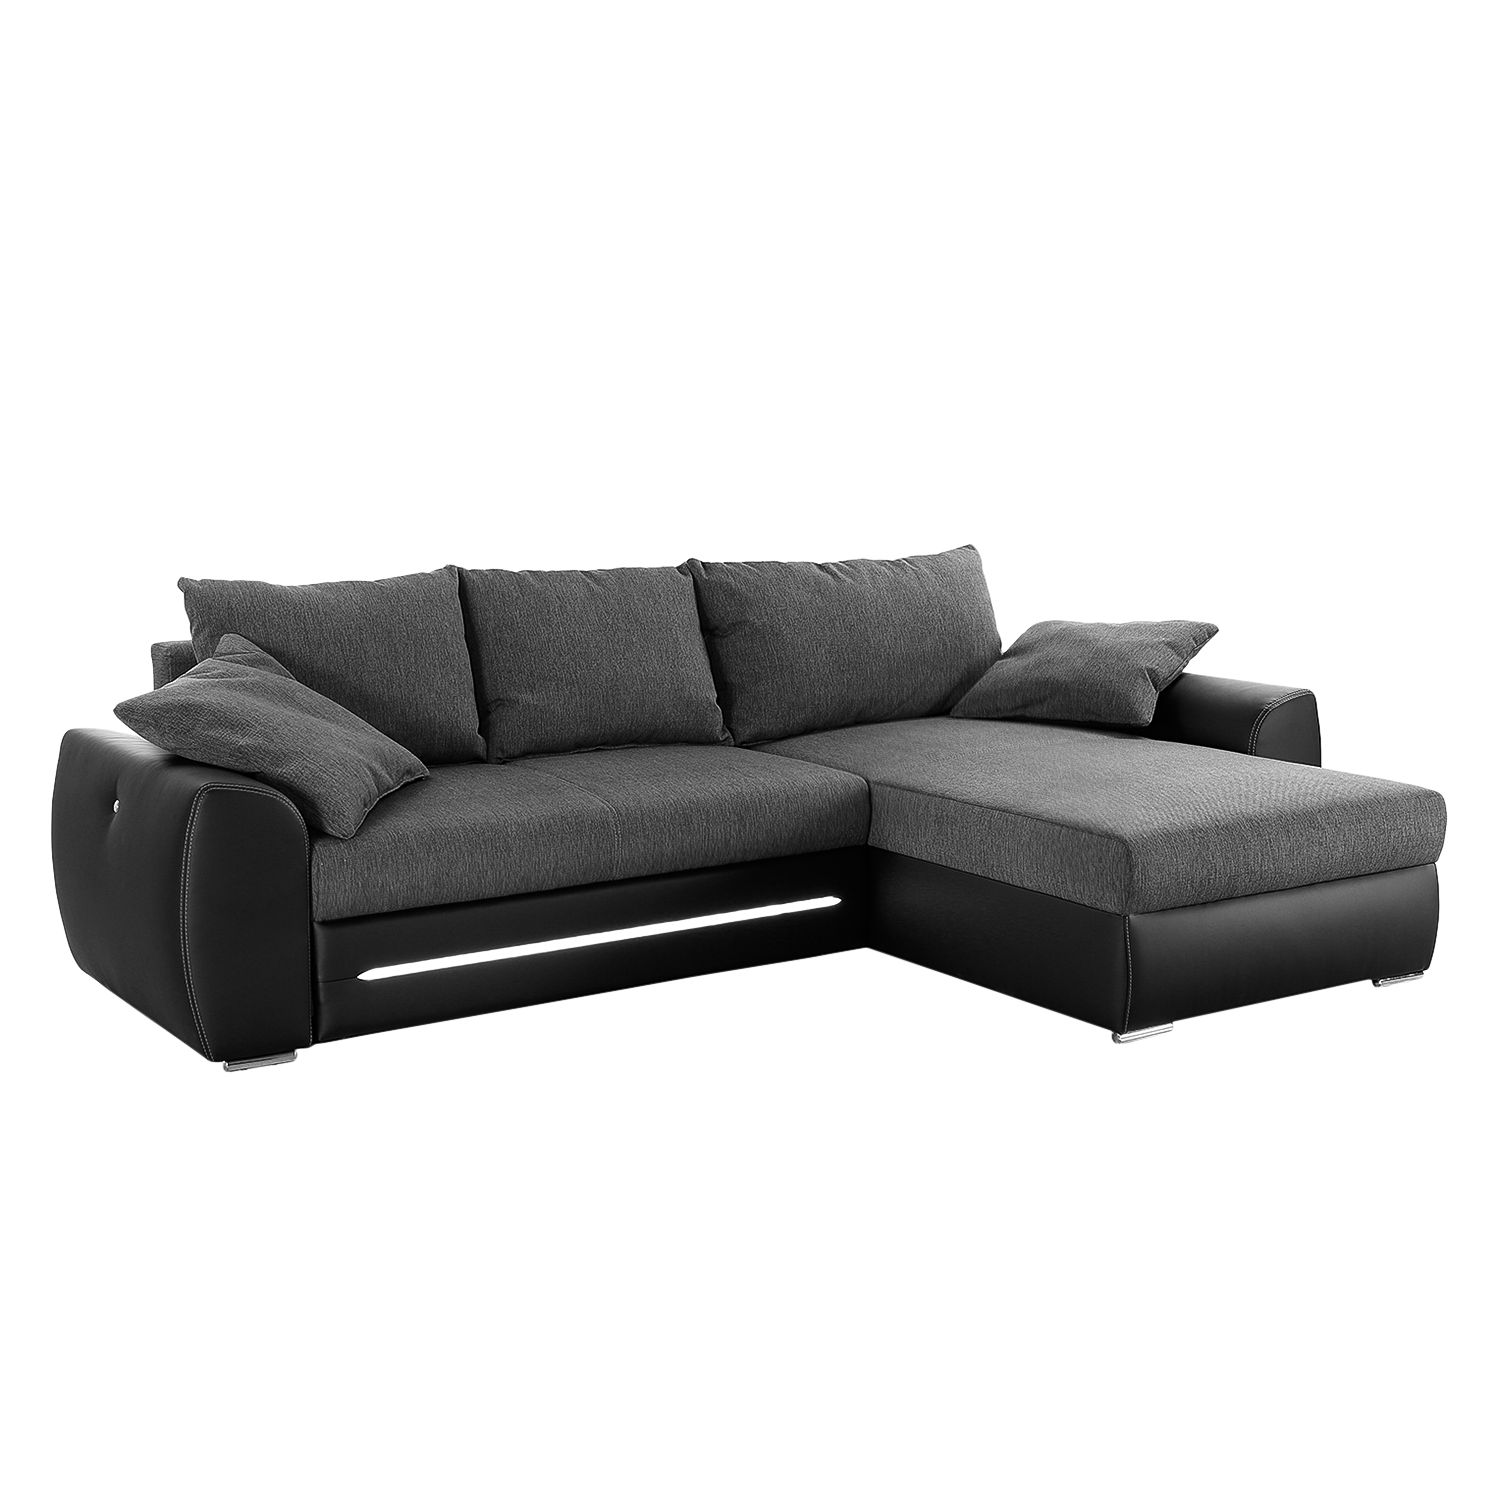 ecksofa mit schlaffunktion k ln inspirierendes design f r wohnm bel. Black Bedroom Furniture Sets. Home Design Ideas